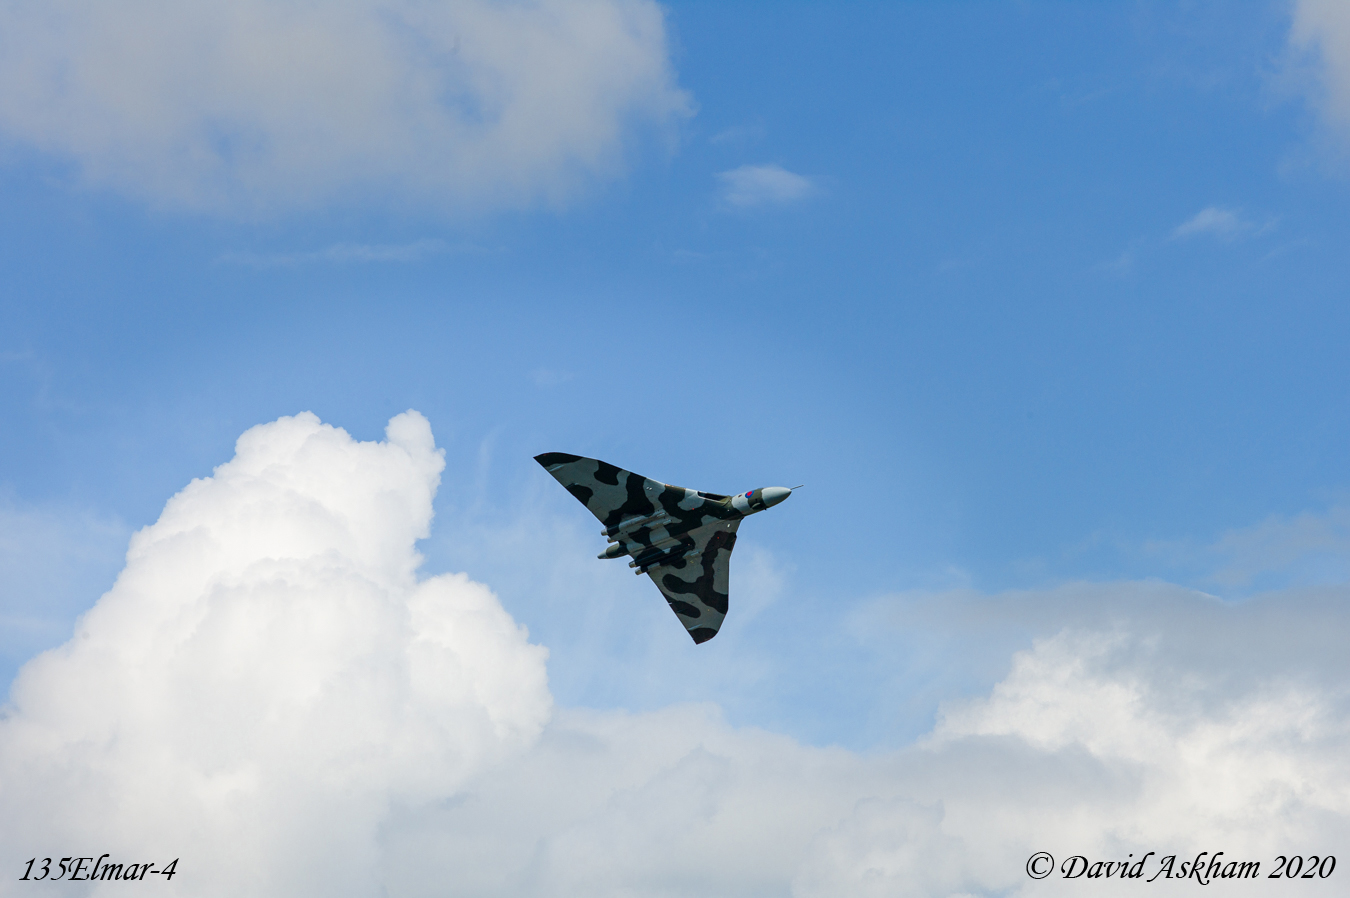 Ground to air shot of Avro Vulcan nuclear bomber at an air show in UK (Leica M9 with Leica 135mm f/4 Elmar lens)